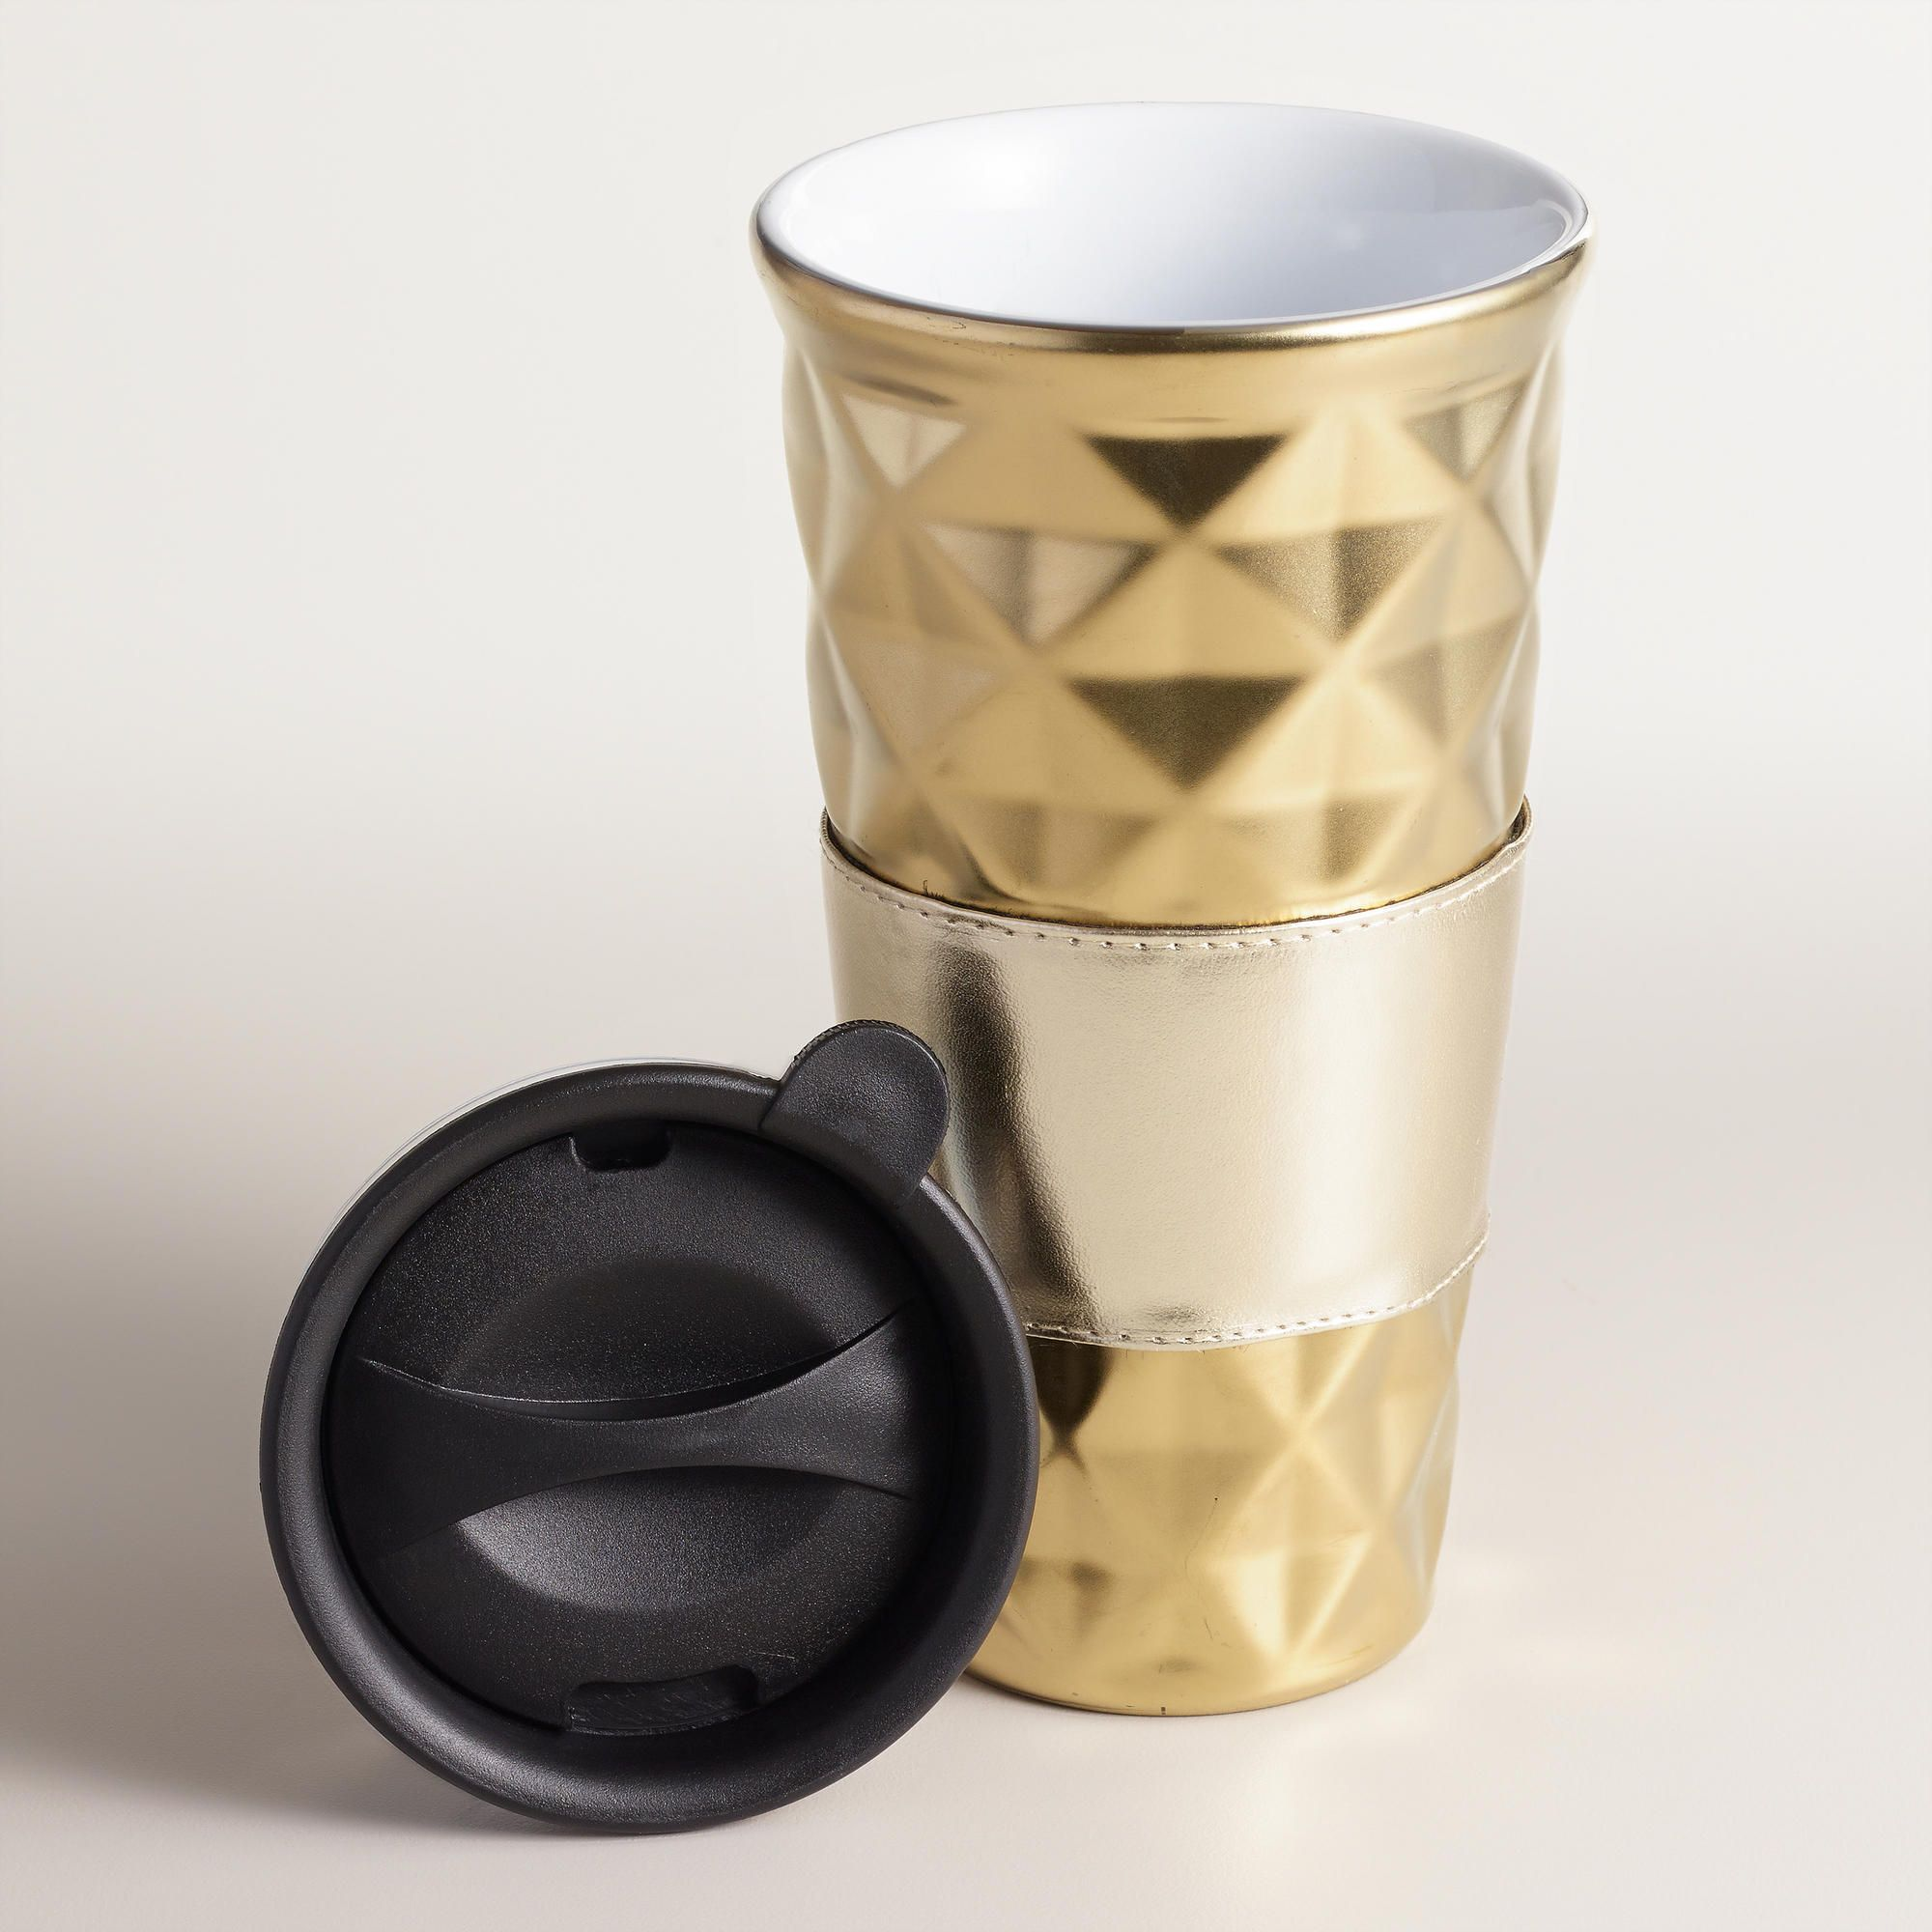 Quilted Porcelain NonPaper Cups, Set of 2 World Market